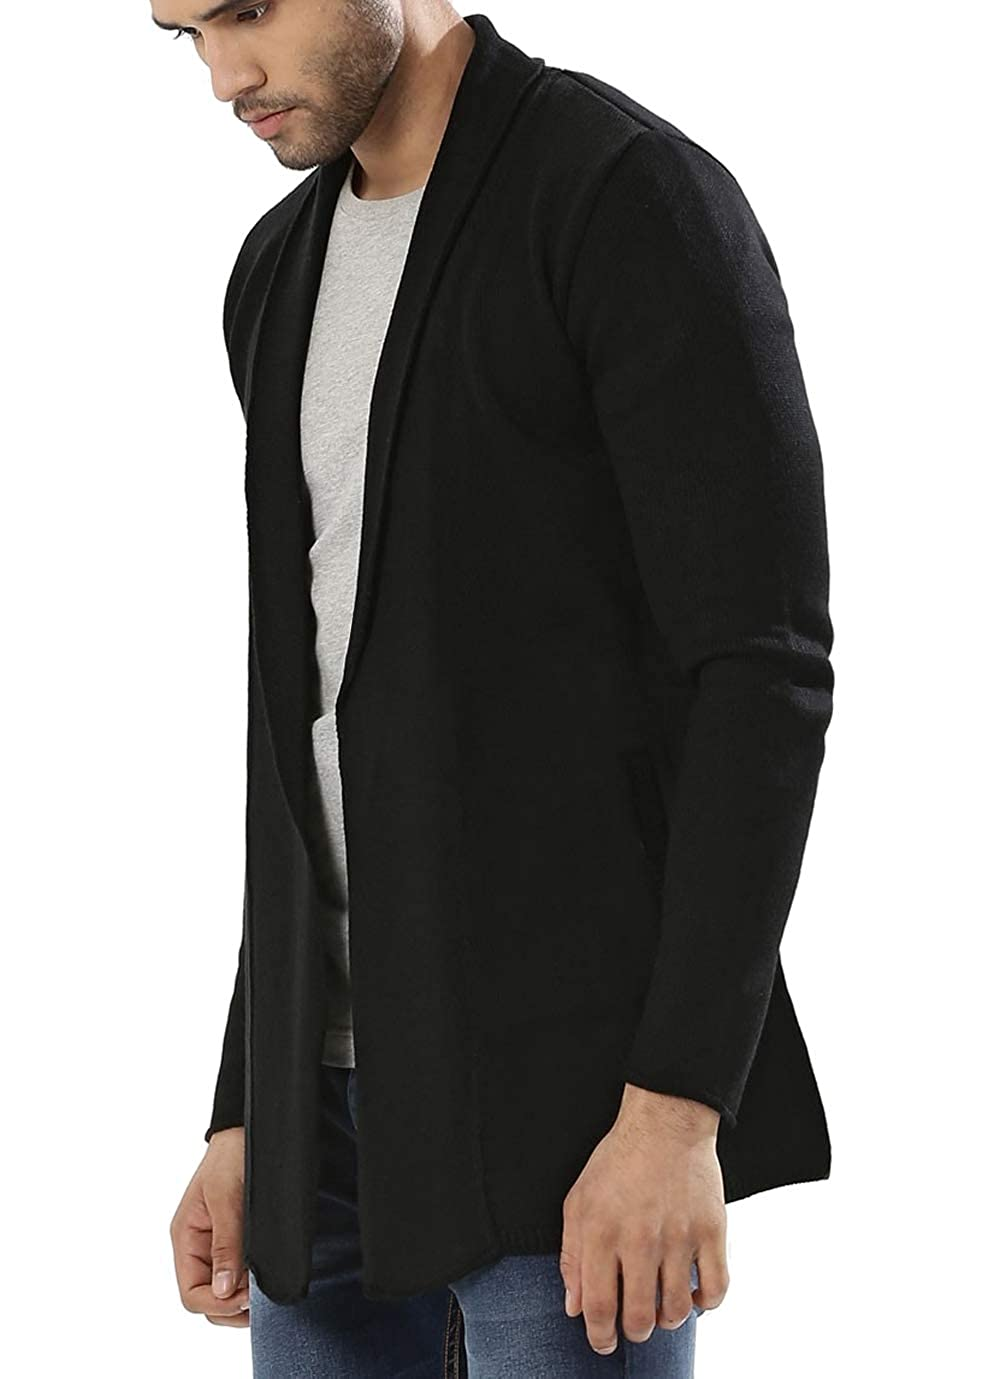 Simbama Men's Shawl Collar Cardigan Sweat Long Sleeve Open Front Lightweight Overcoat Long Length Drape Cape 7253381